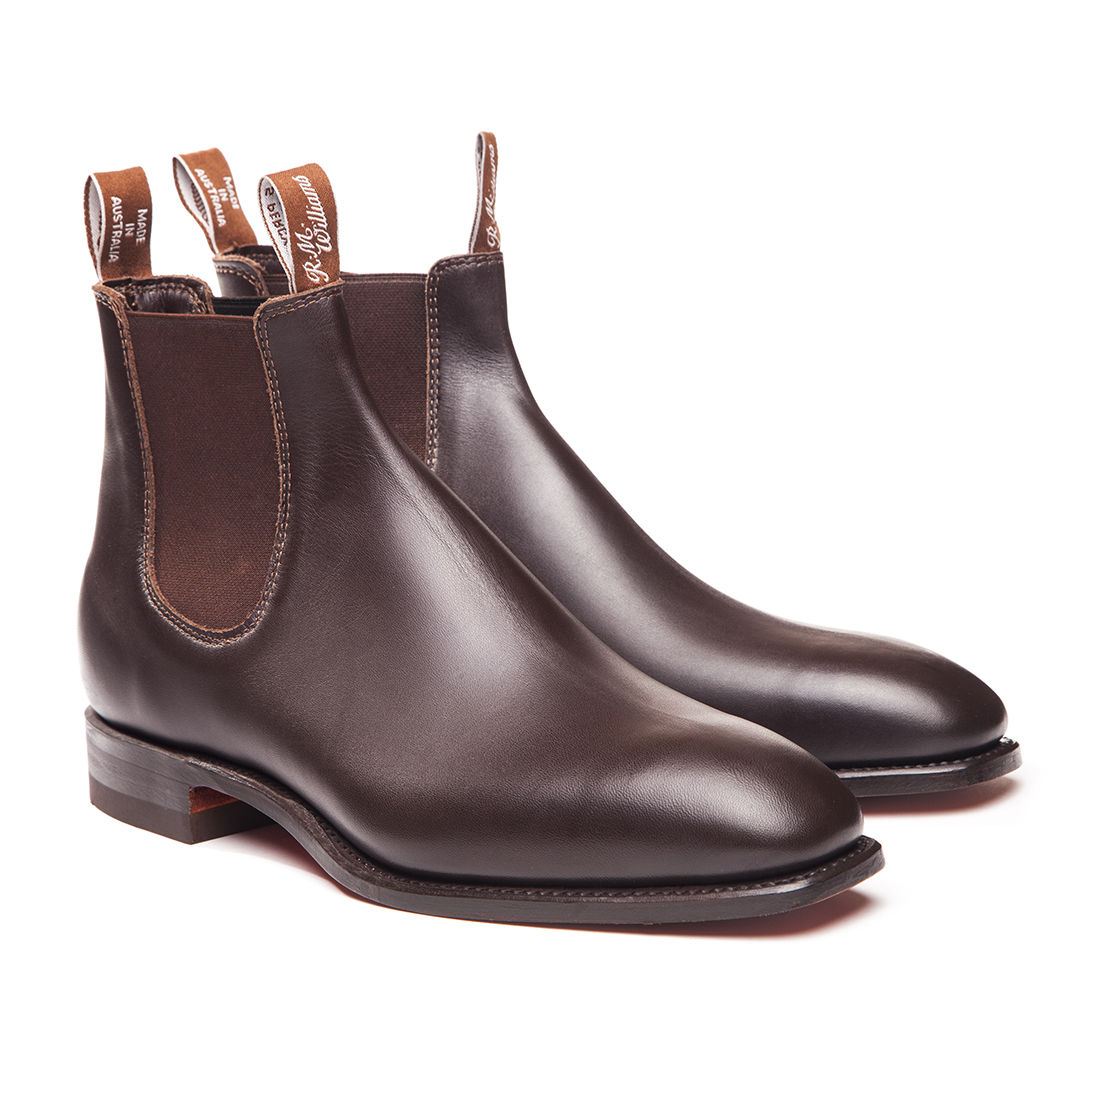 Classic Craftsman - Chestnut - Joe's Boots - Kingston